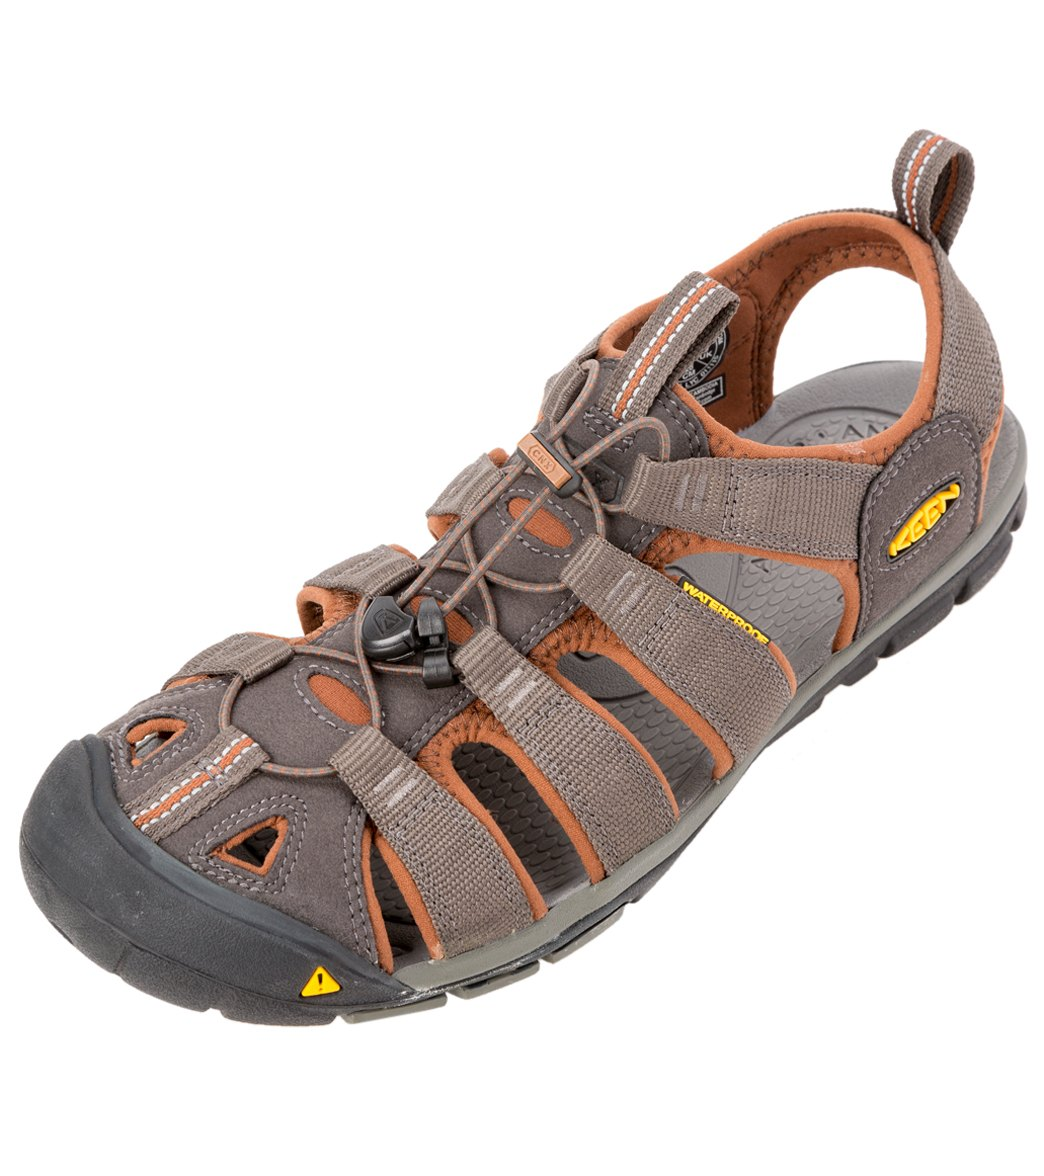 6309aaaf7da9 Keen Men s Clearwater CNX Water Shoes at SwimOutlet.com - Free Shipping